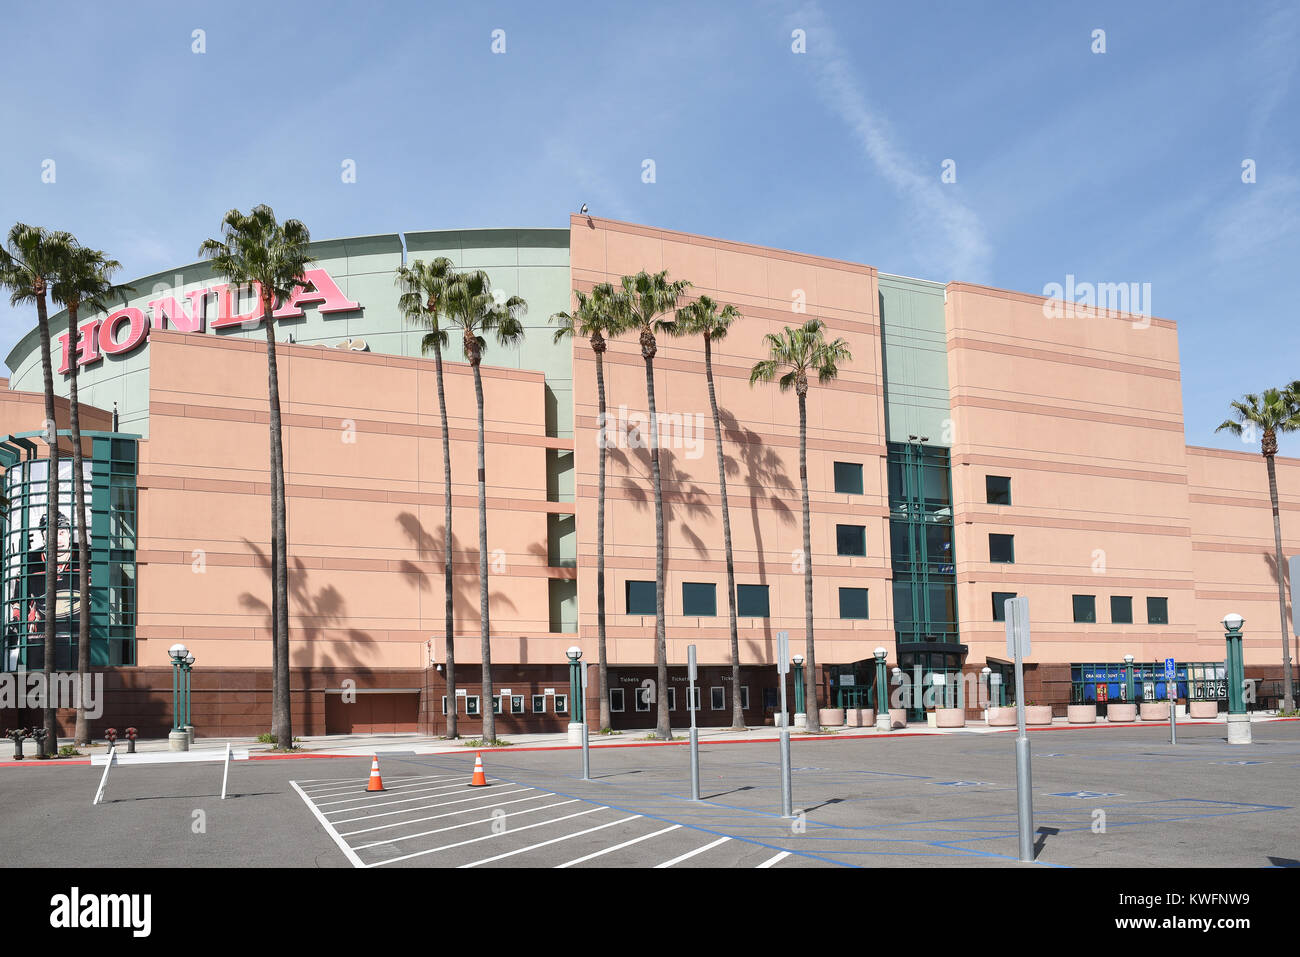 ANAHEIM, CA, MARCH 17, 2017: The Honda Center In Anaheim, California